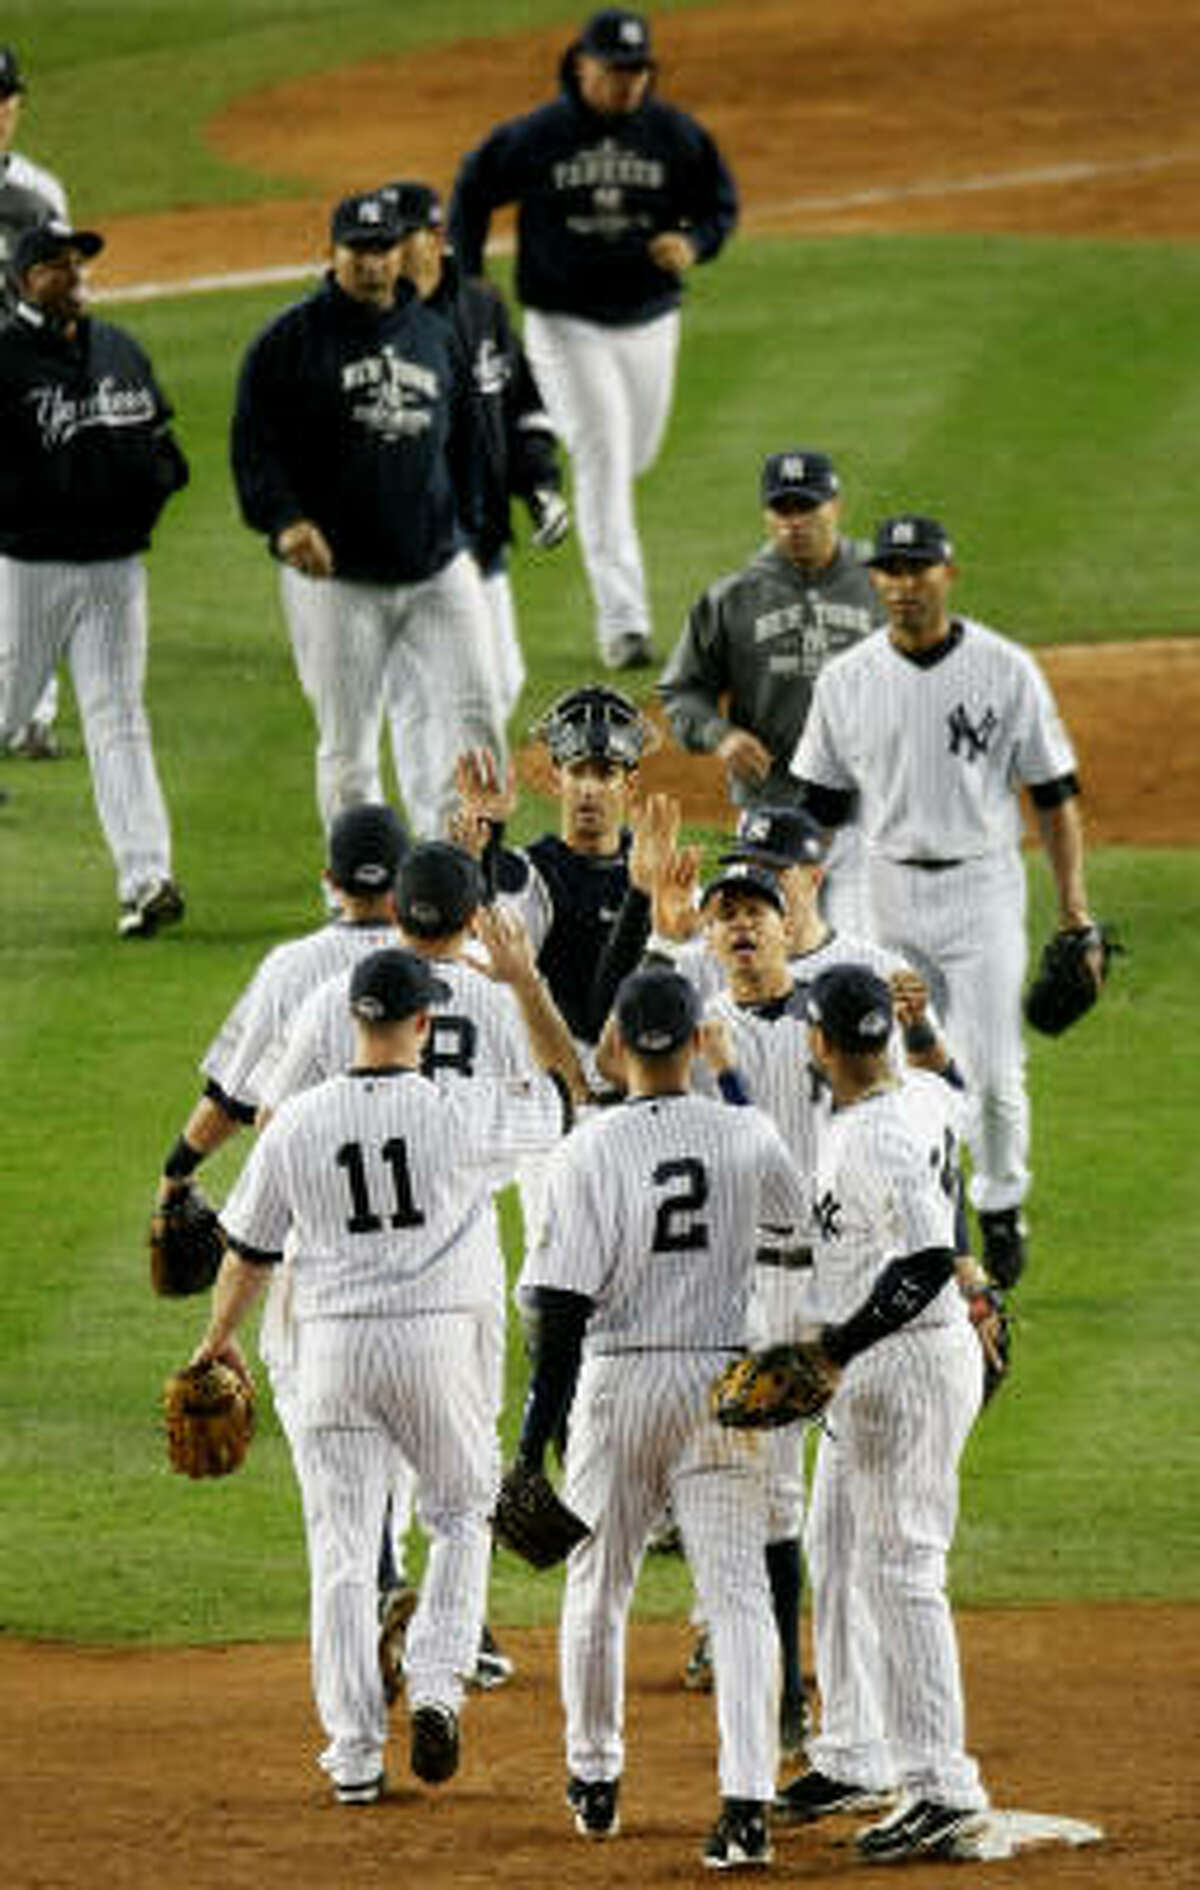 Game 2: Yankees 3, Phillies 1 The New York Yankees celebrate after defeating the Philadelphia Phillies in Game 2 of the World Series on Thursday night at Yankee Stadium.